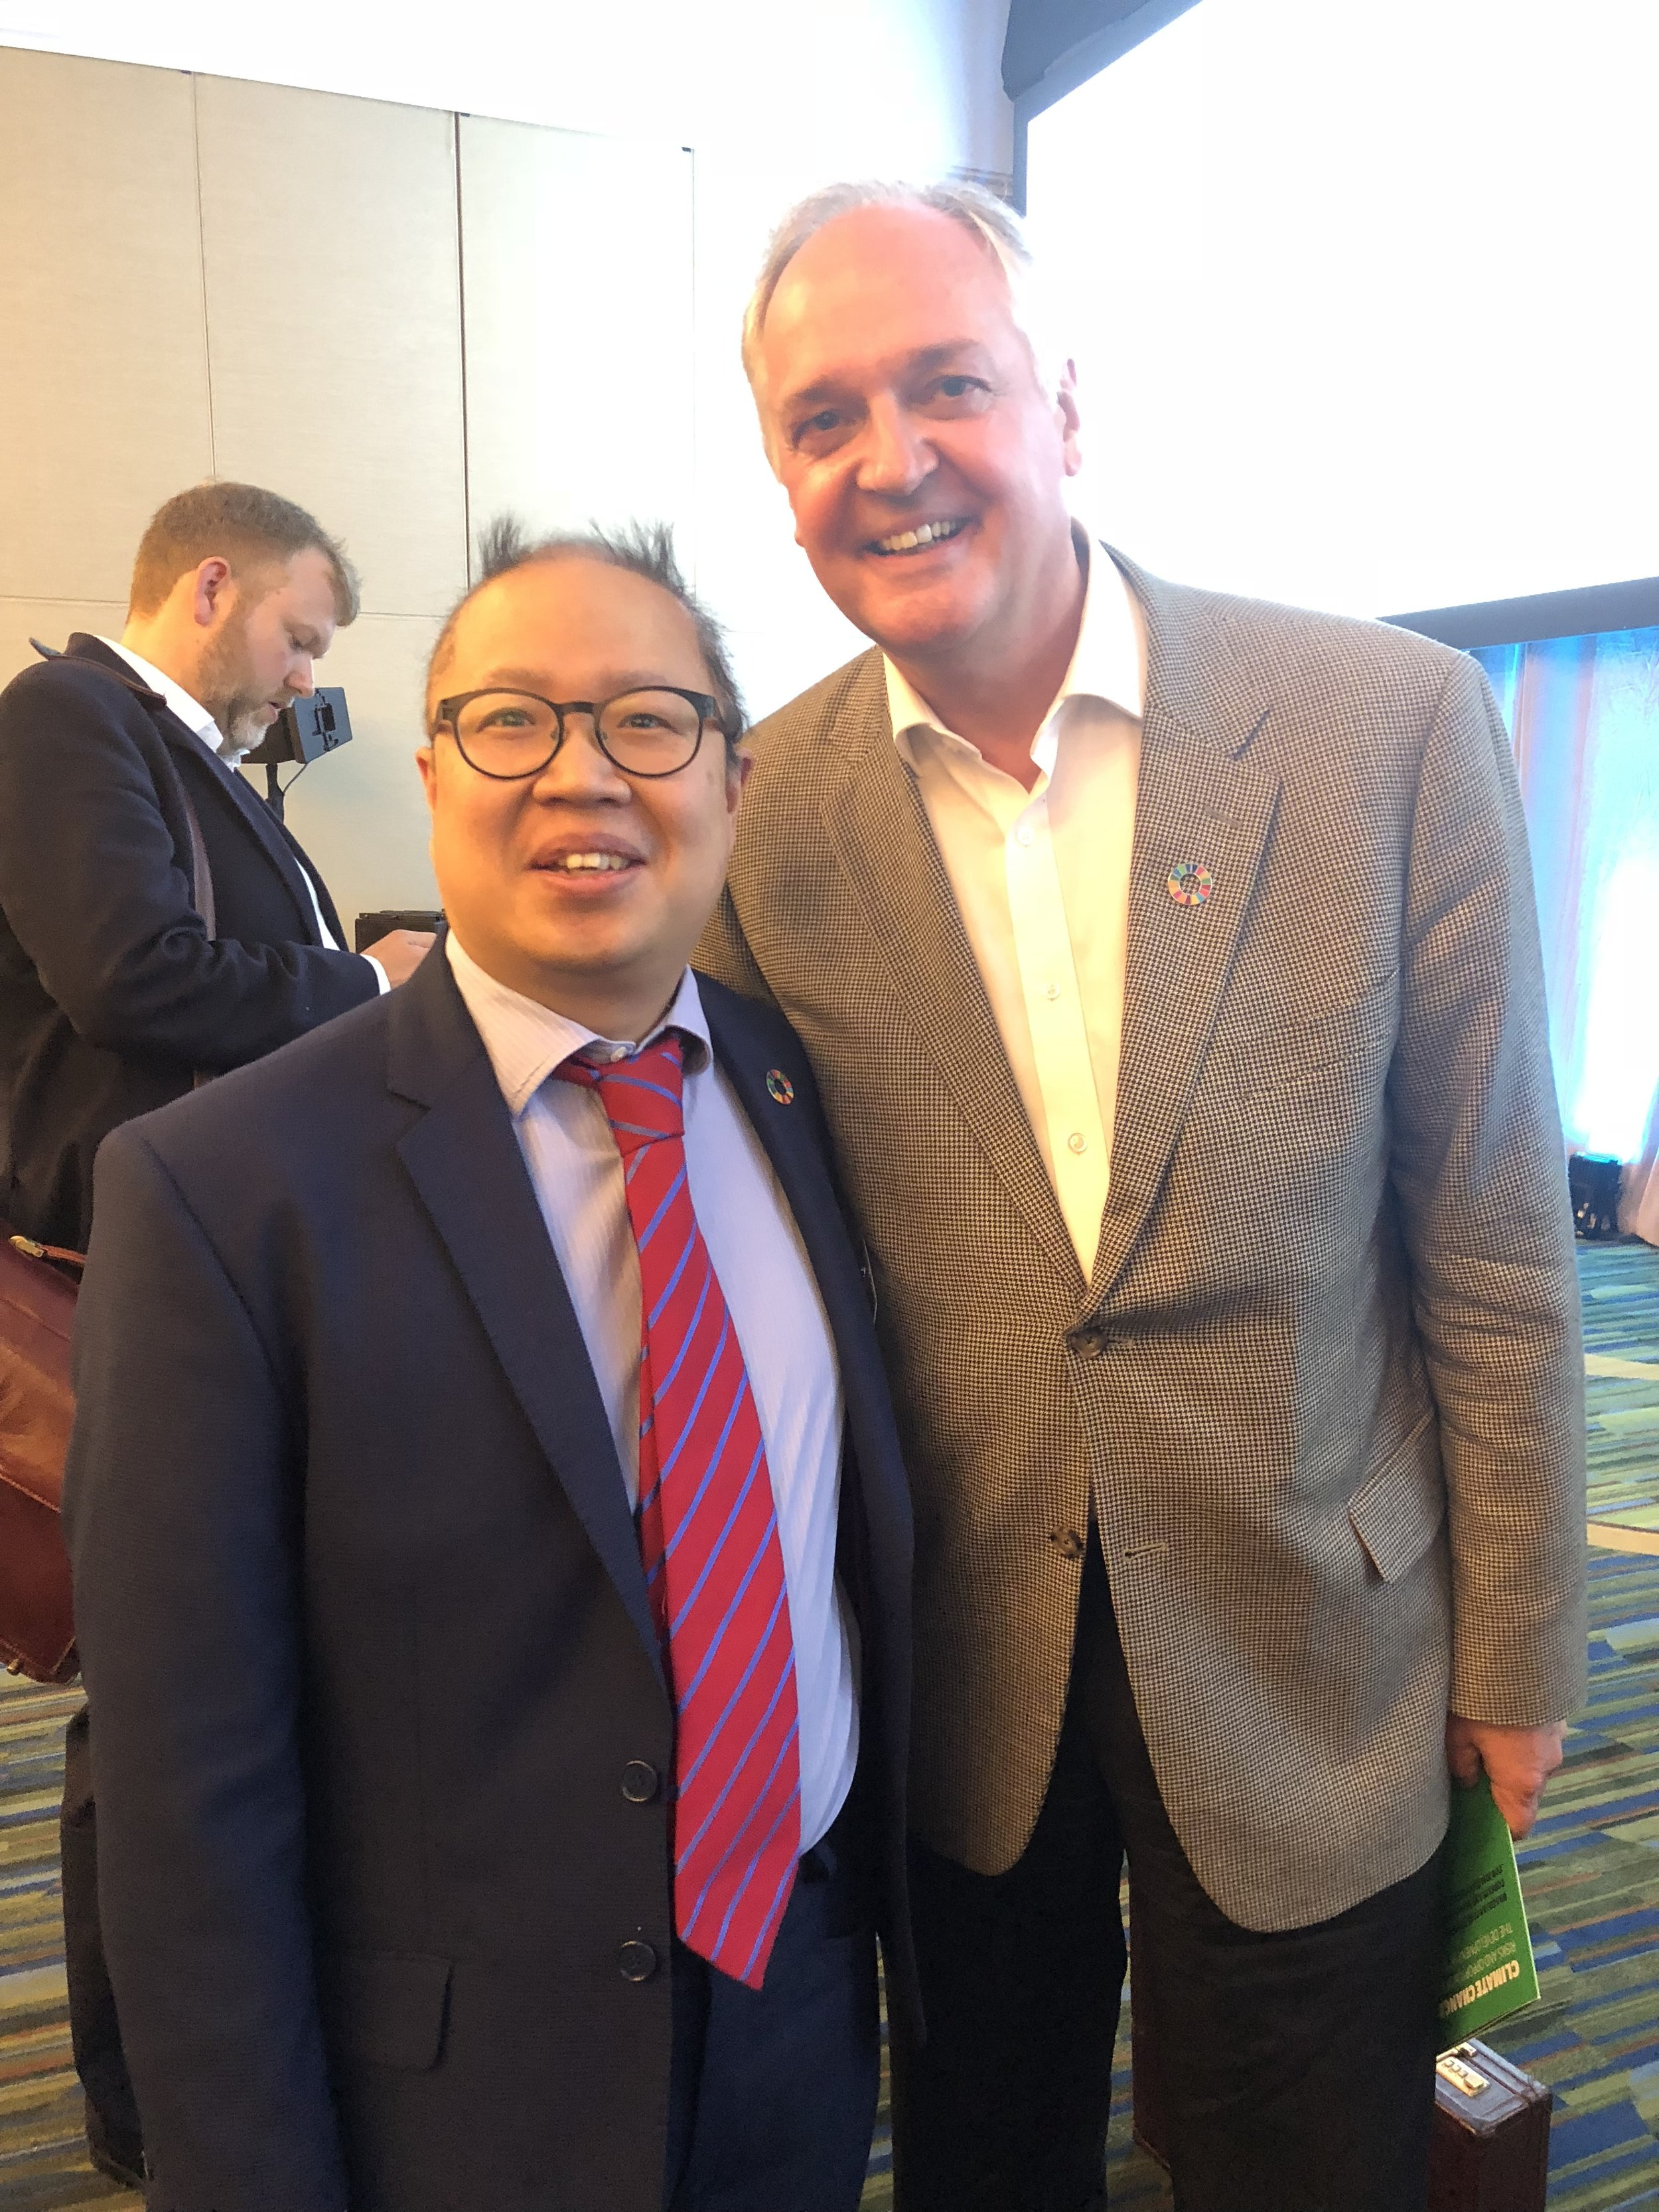 Selfie with Paul Polman, (C) B Yeoh